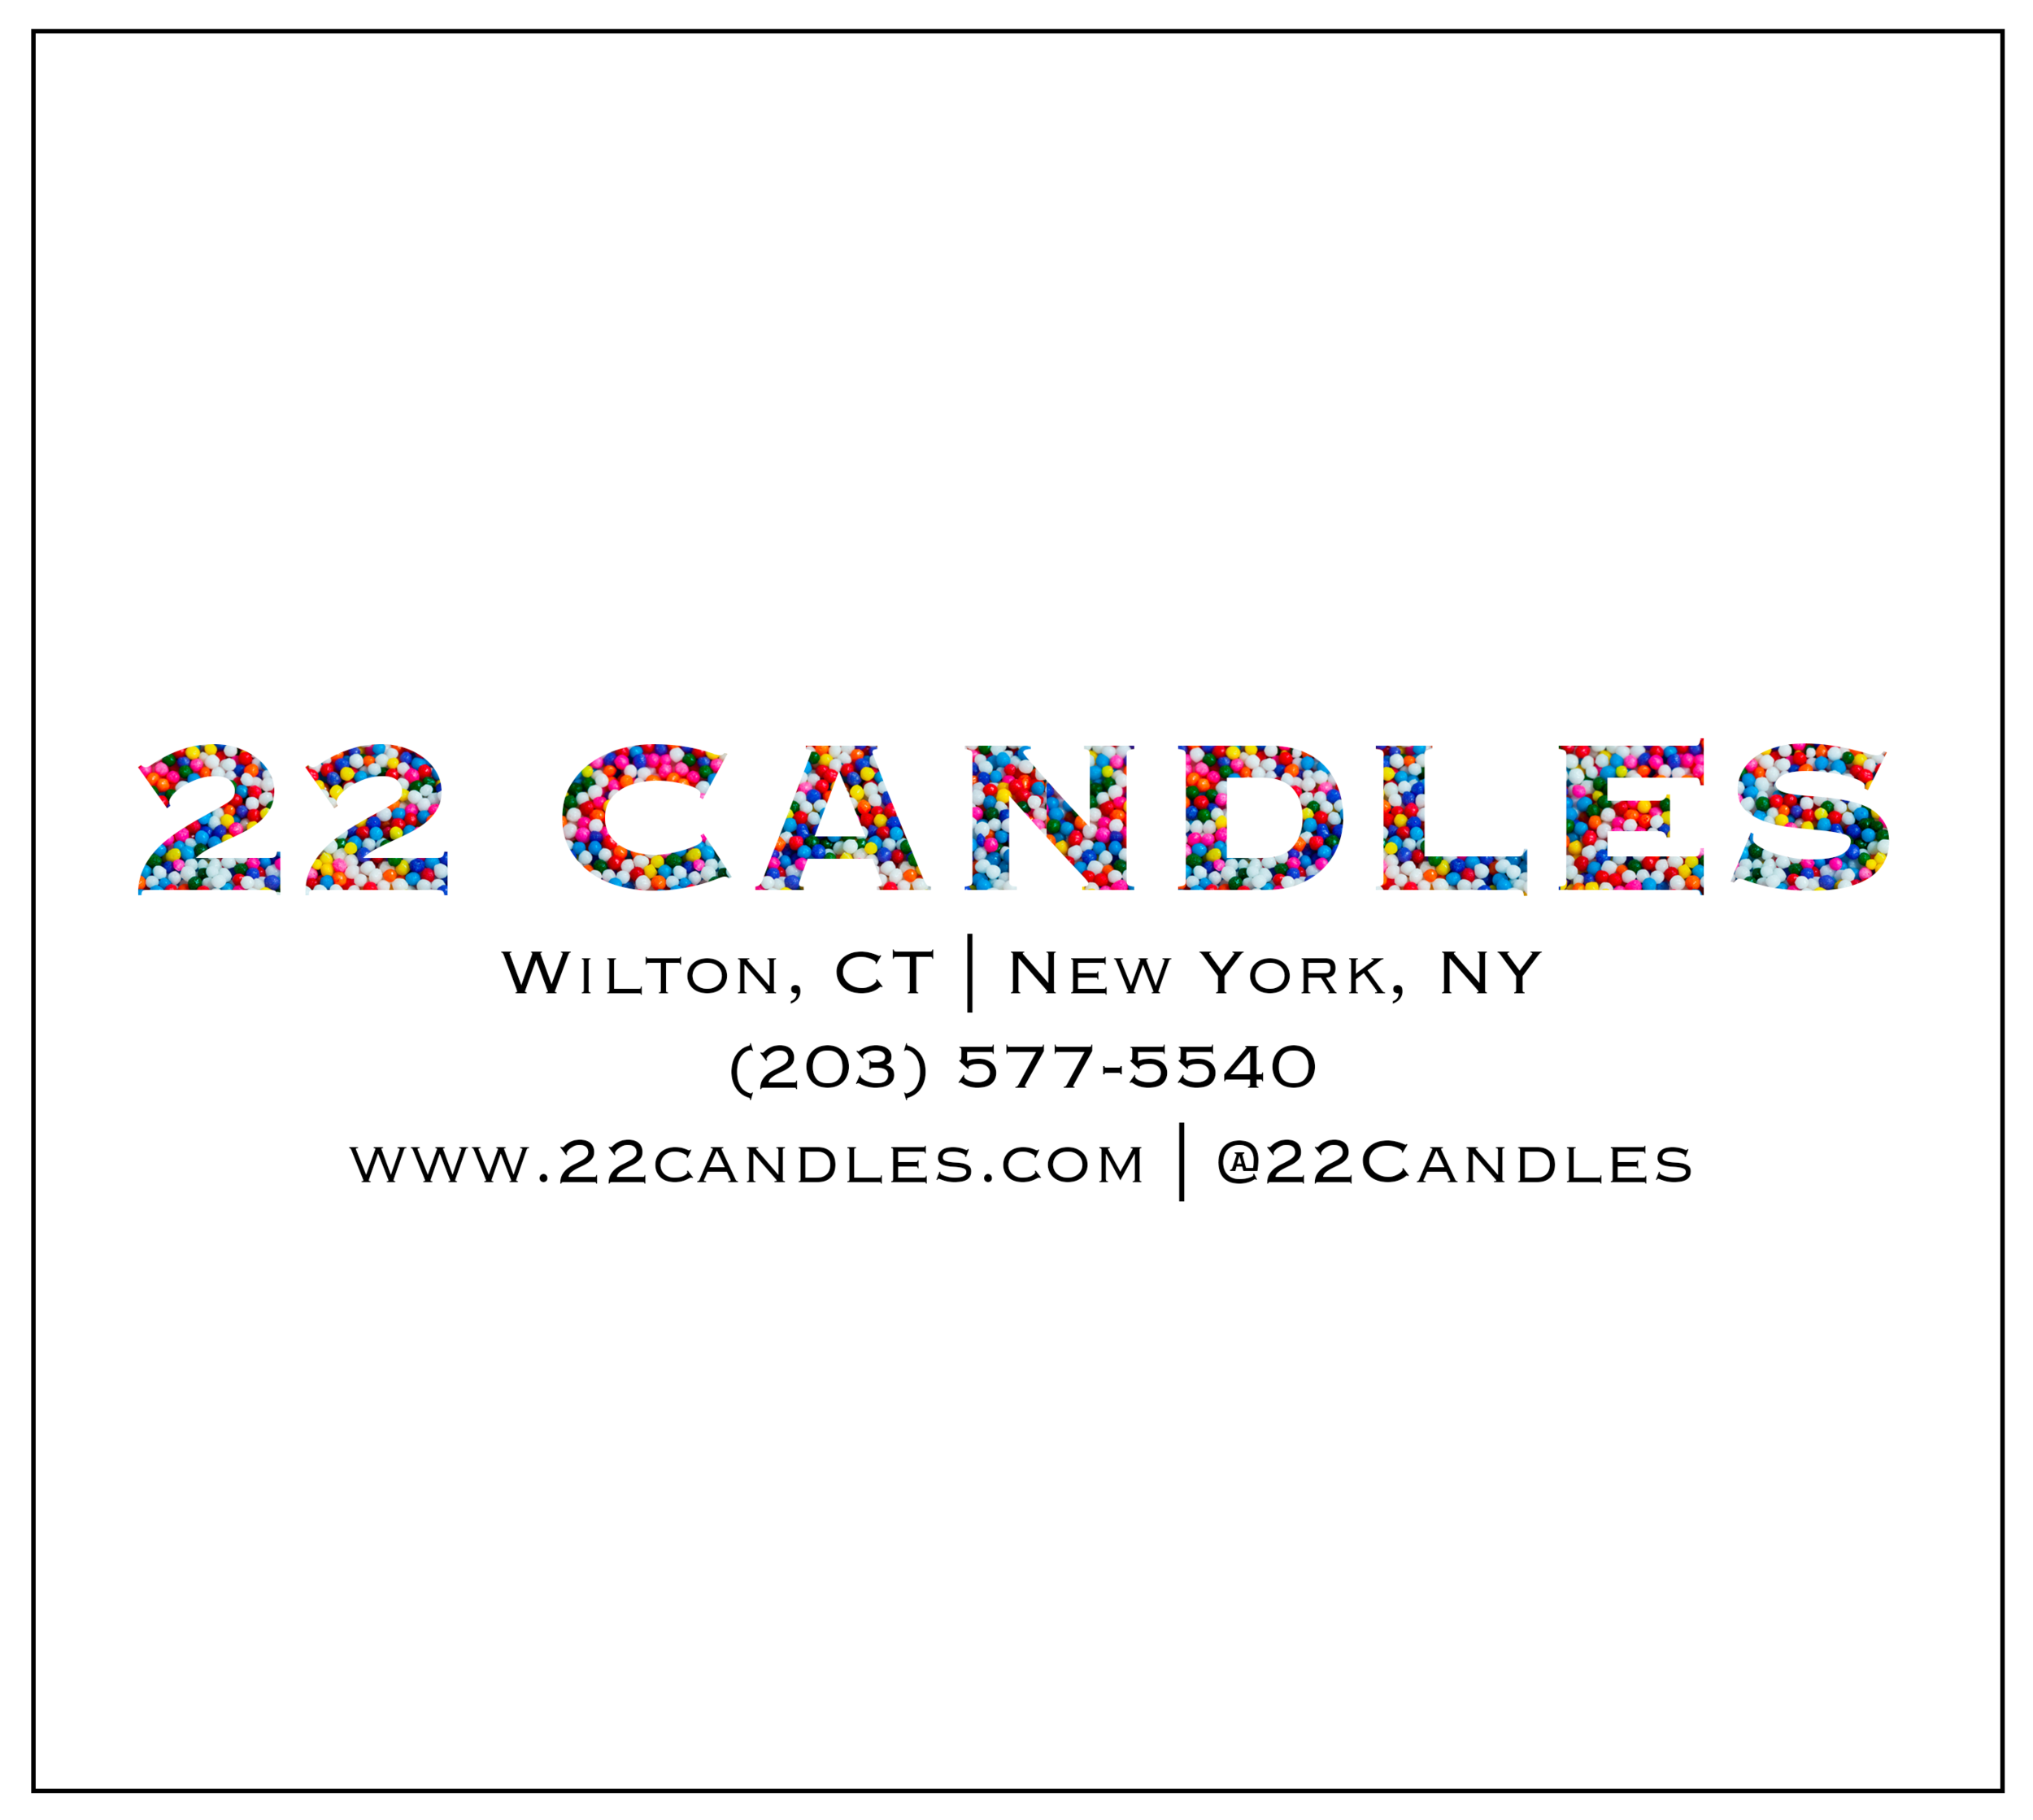 22 Candles new logo.png